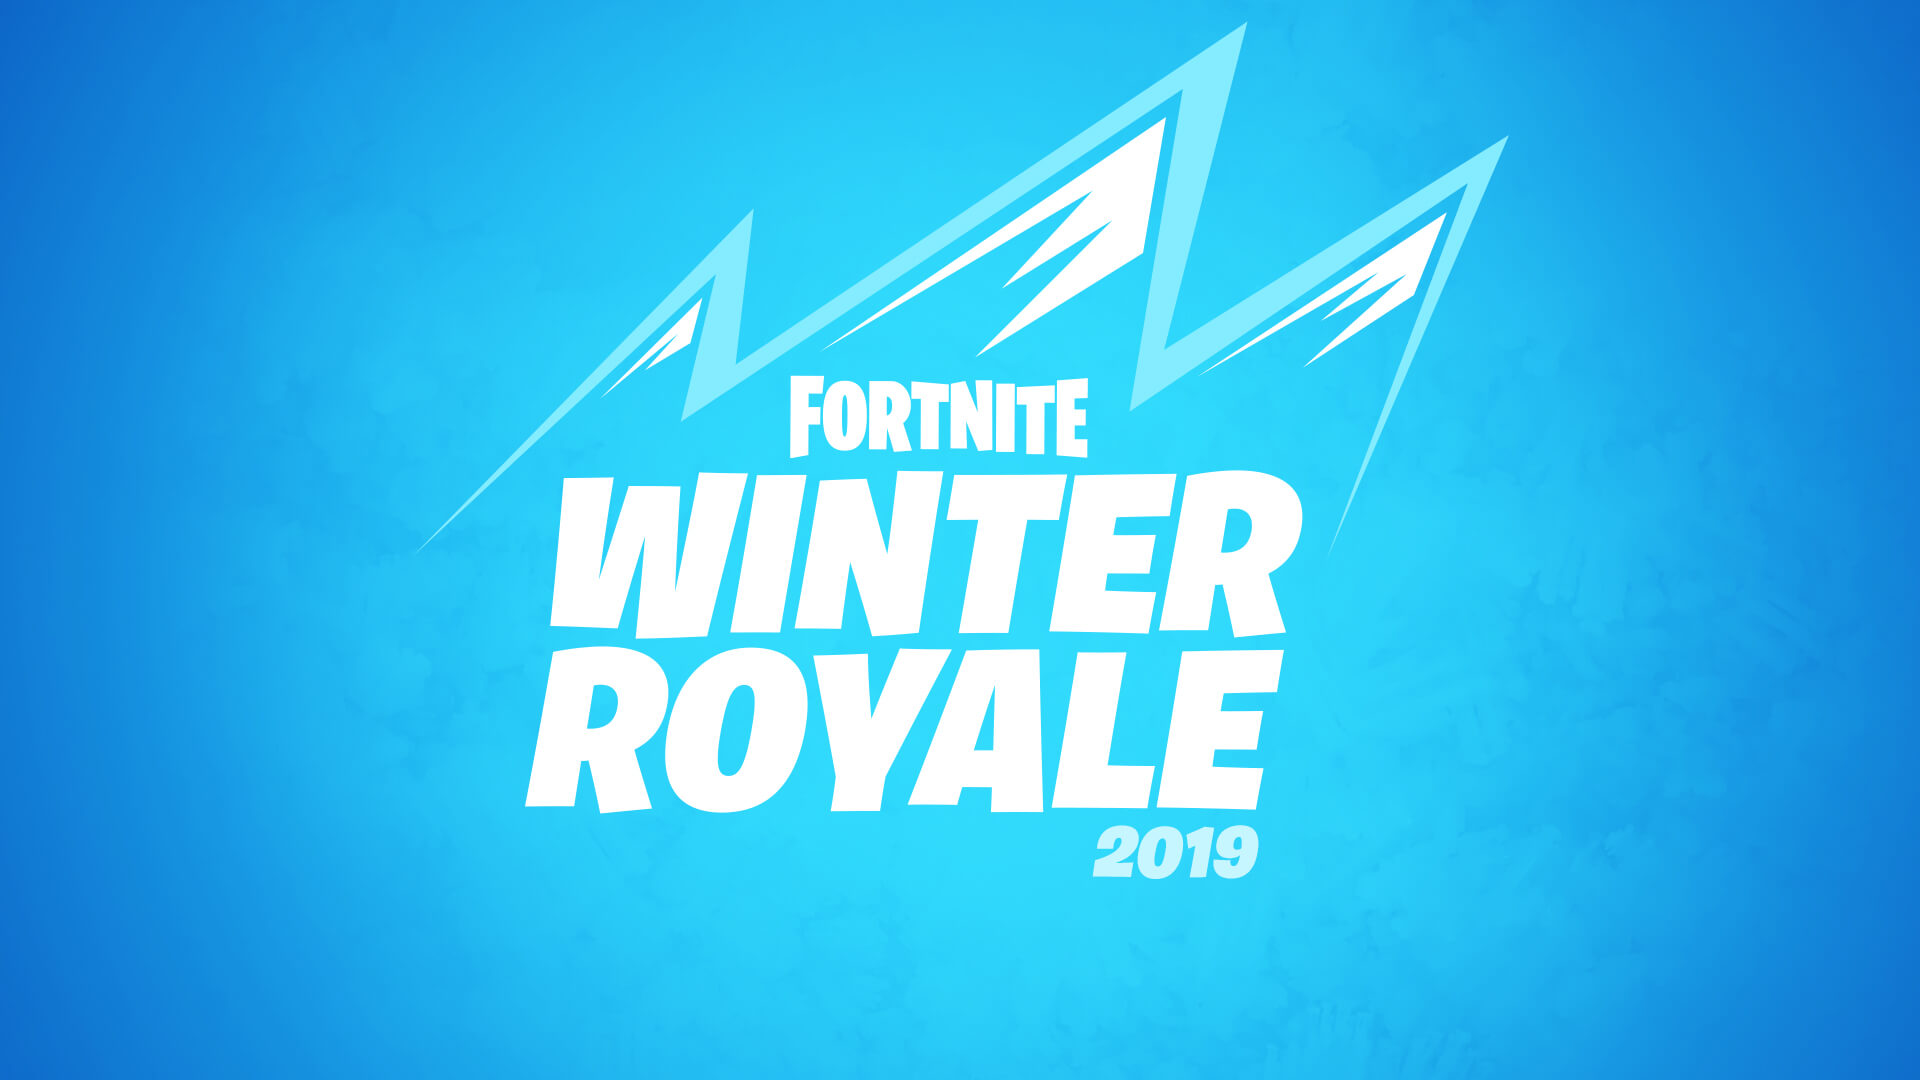 (Source: Epic Games)